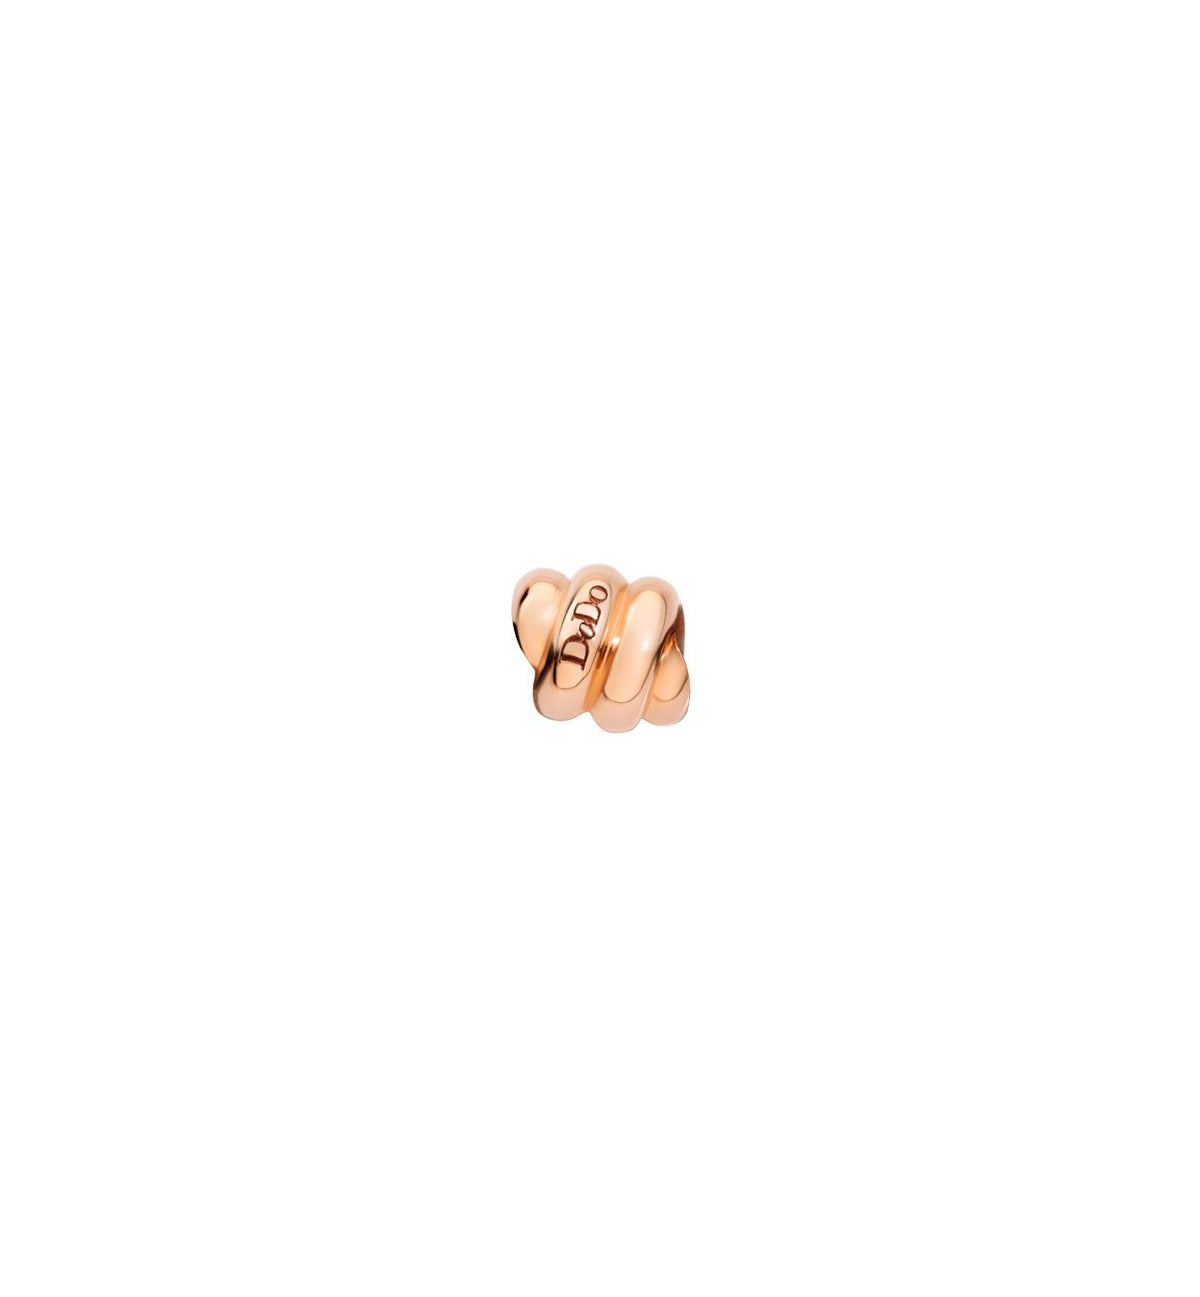 DoDo NoDo Stopper in 9k Rose Gold - Orsini Jewellers NZ